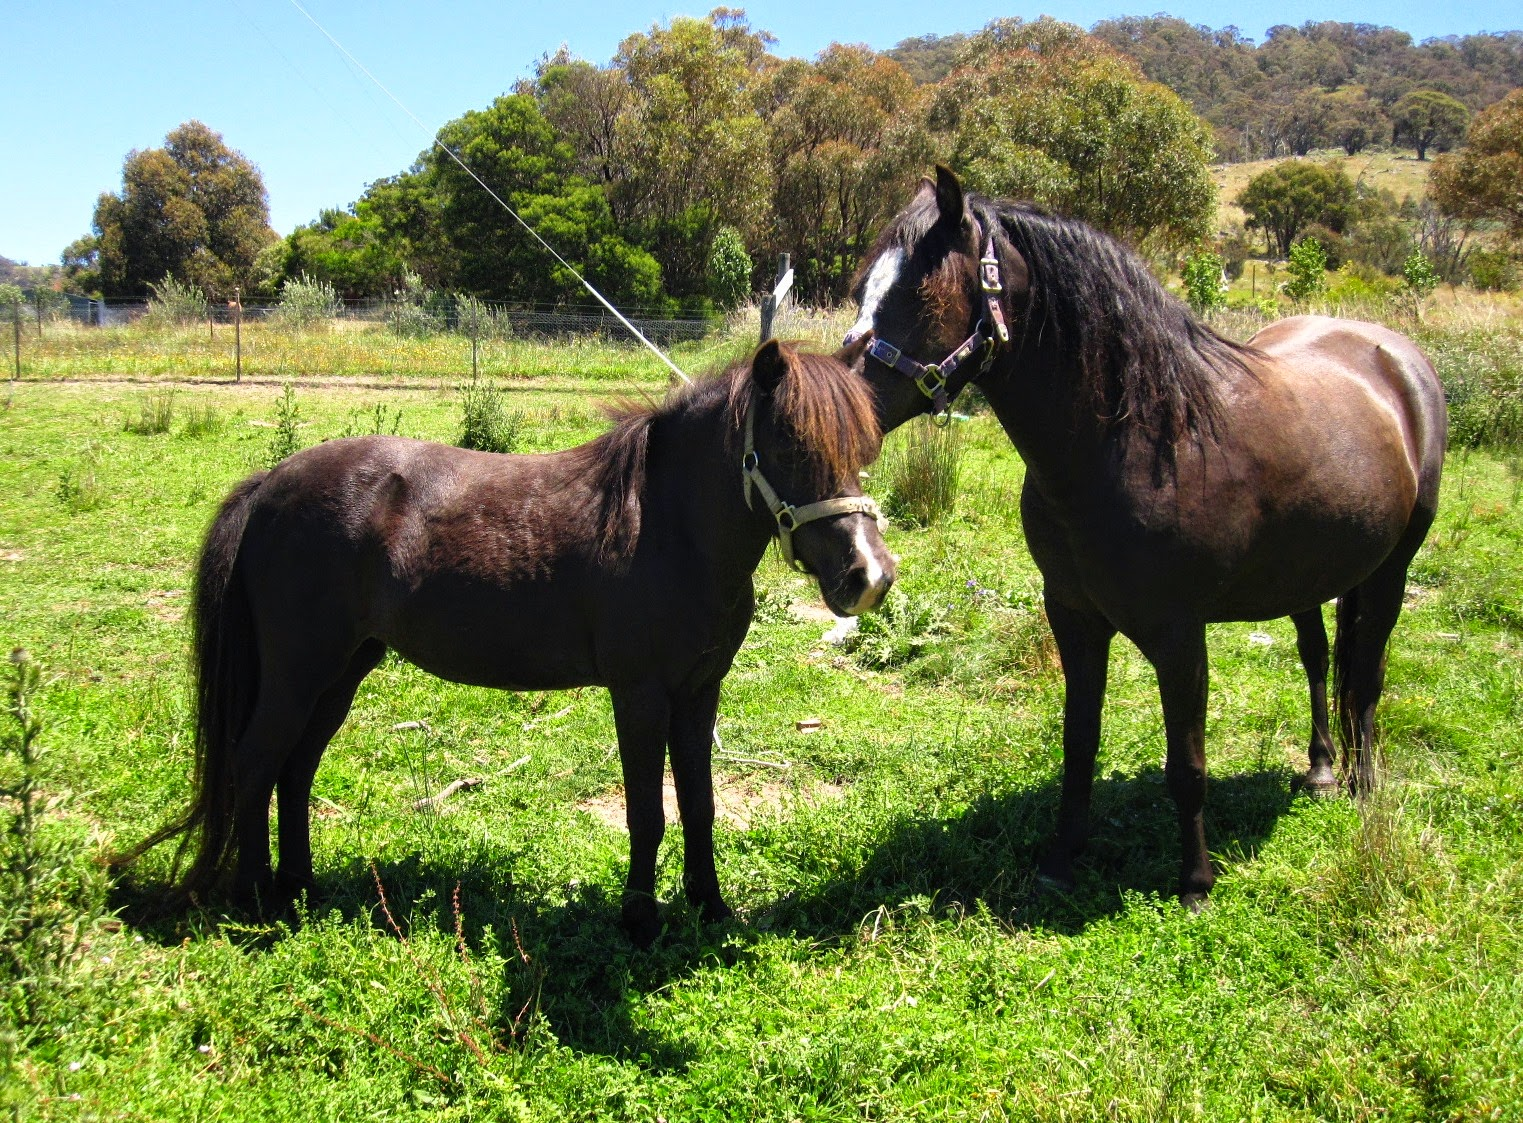 A miniature horse and a pony in a paddock.